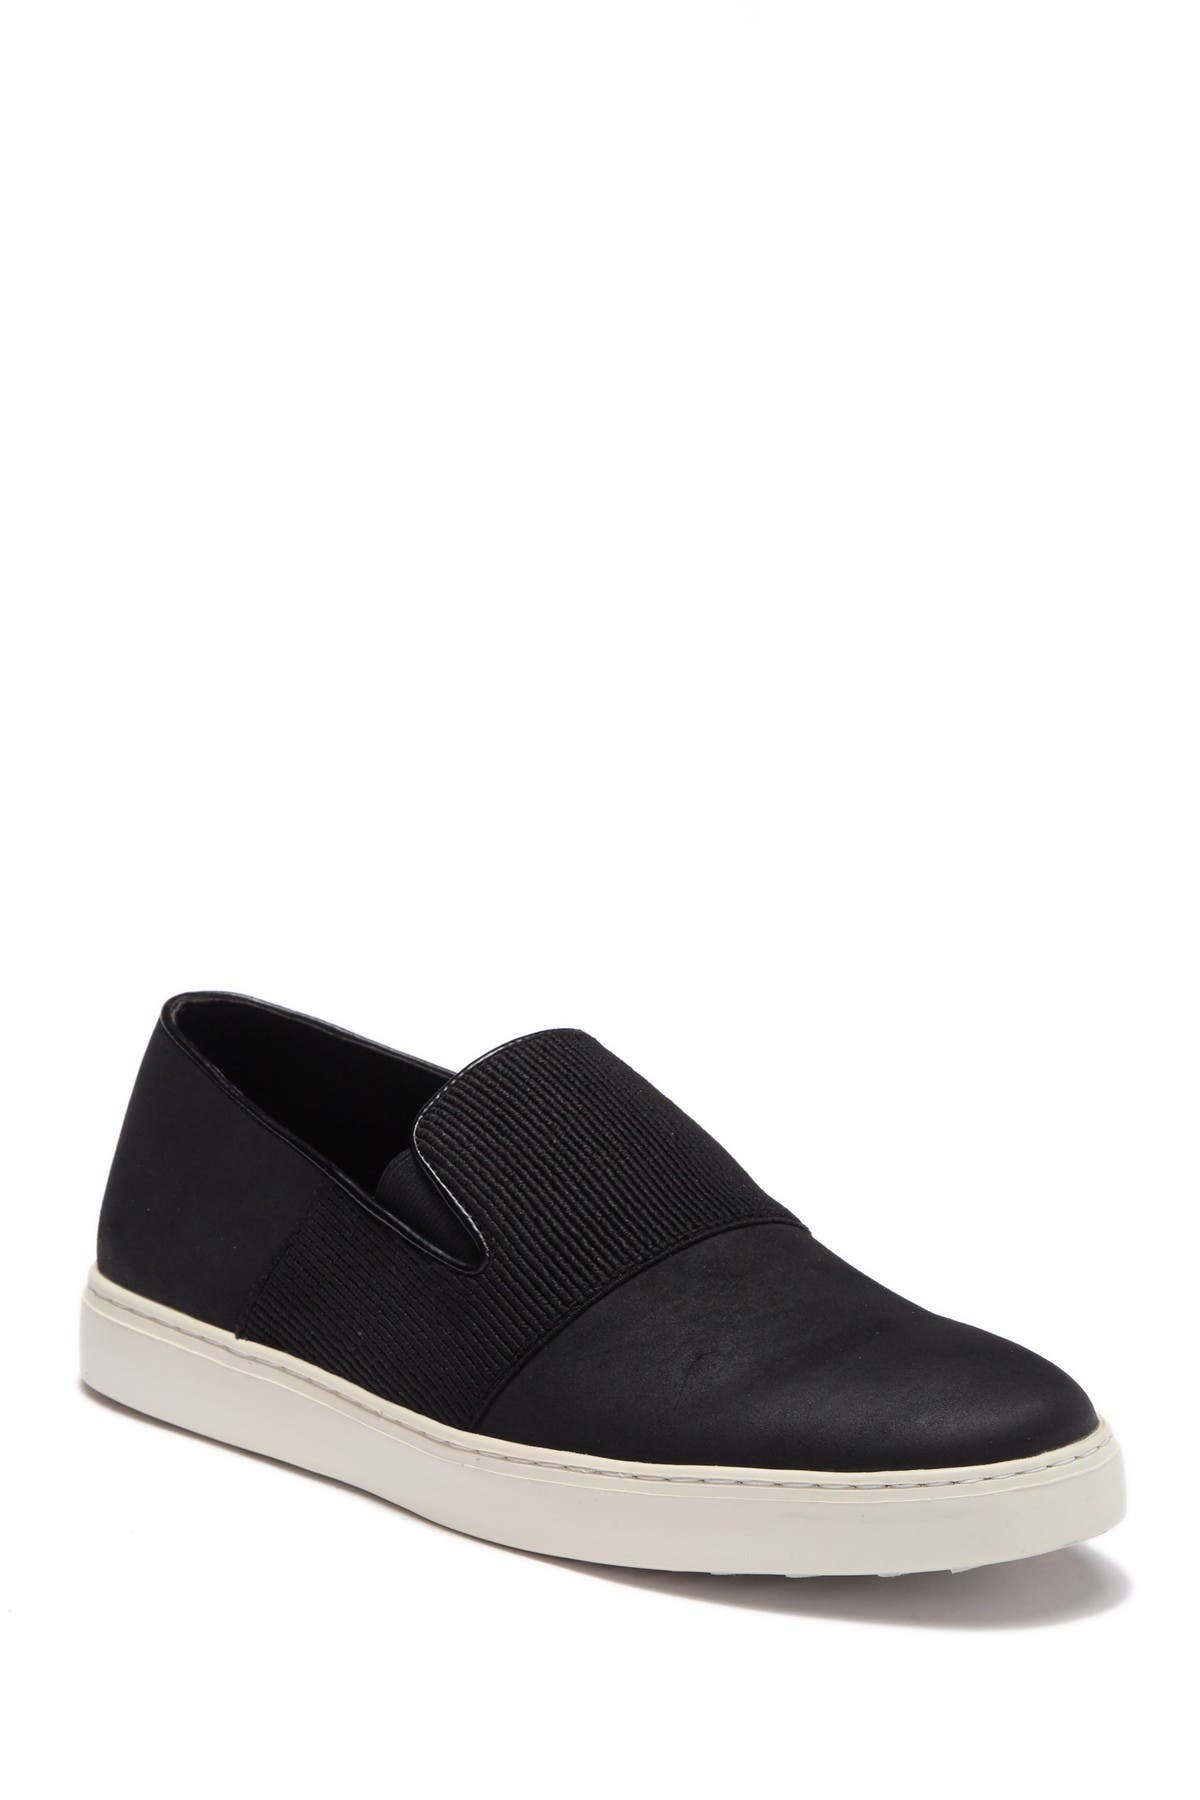 Image of Kenneth Cole Reaction Textured Slip-On Sneaker